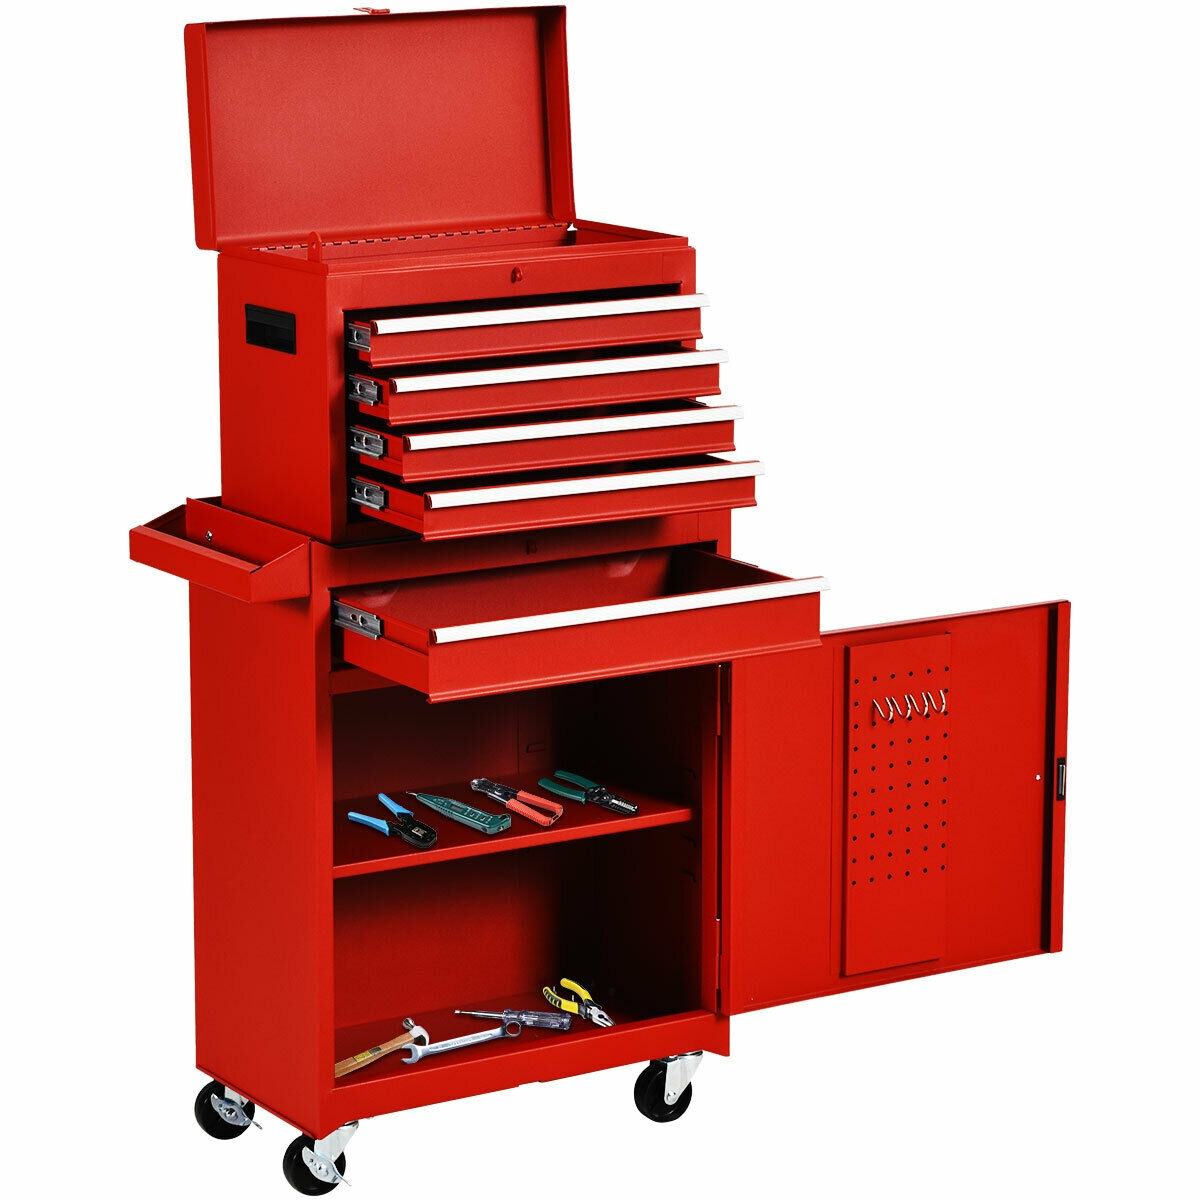 2 in 1 Tool Chest & Cabinet with 5 Sliding Drawers